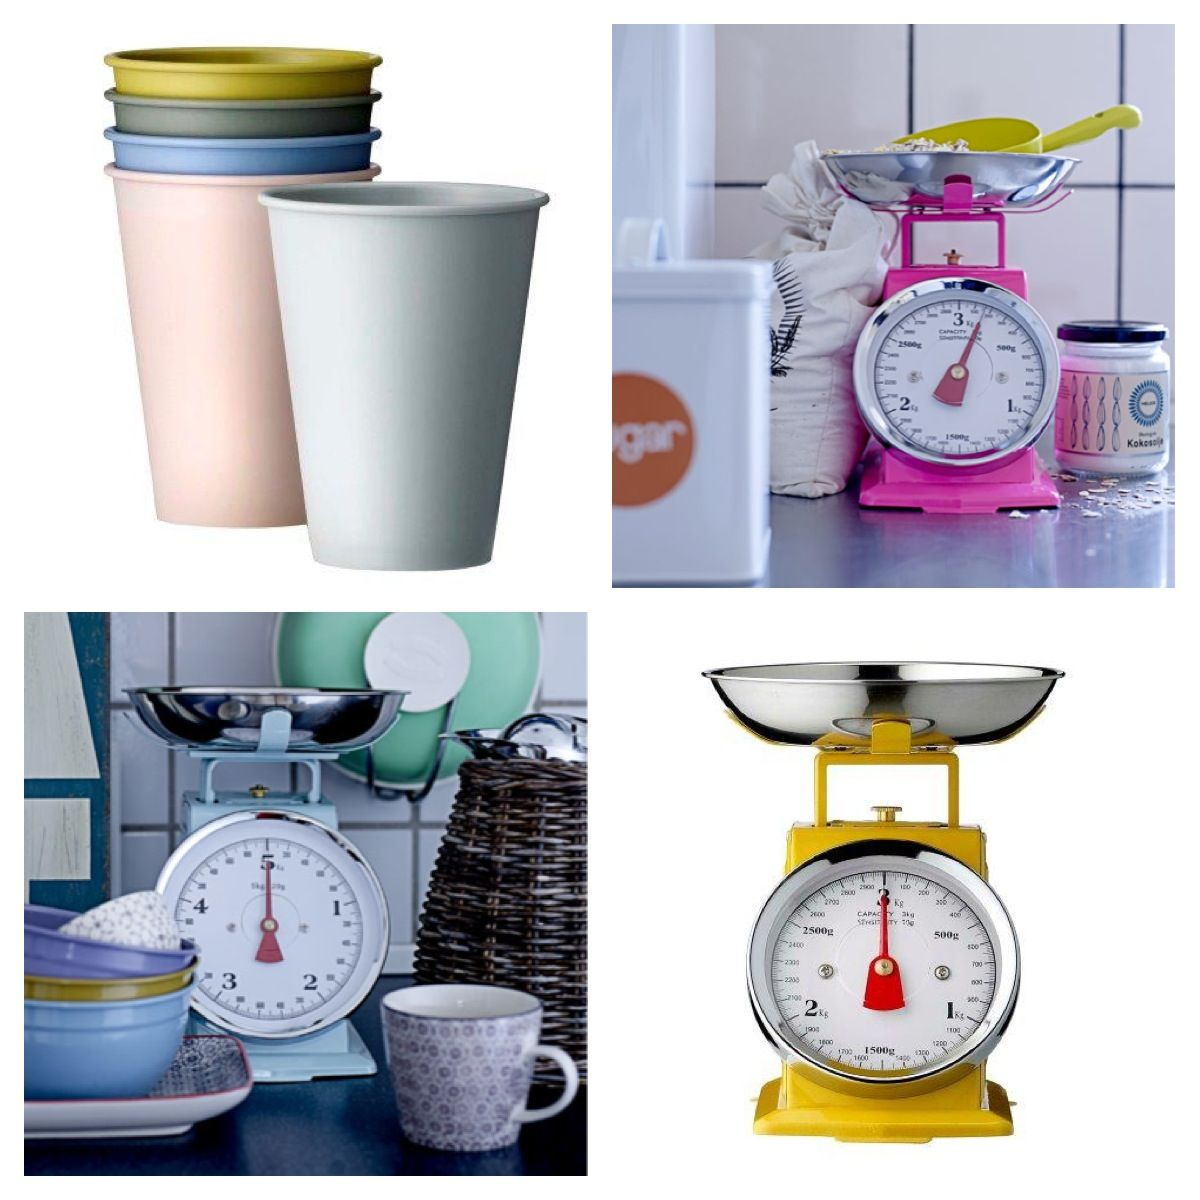 Bloomingville kitchen scales and mat plastic mugs for outdoor use ❤ www.bloomingville.com